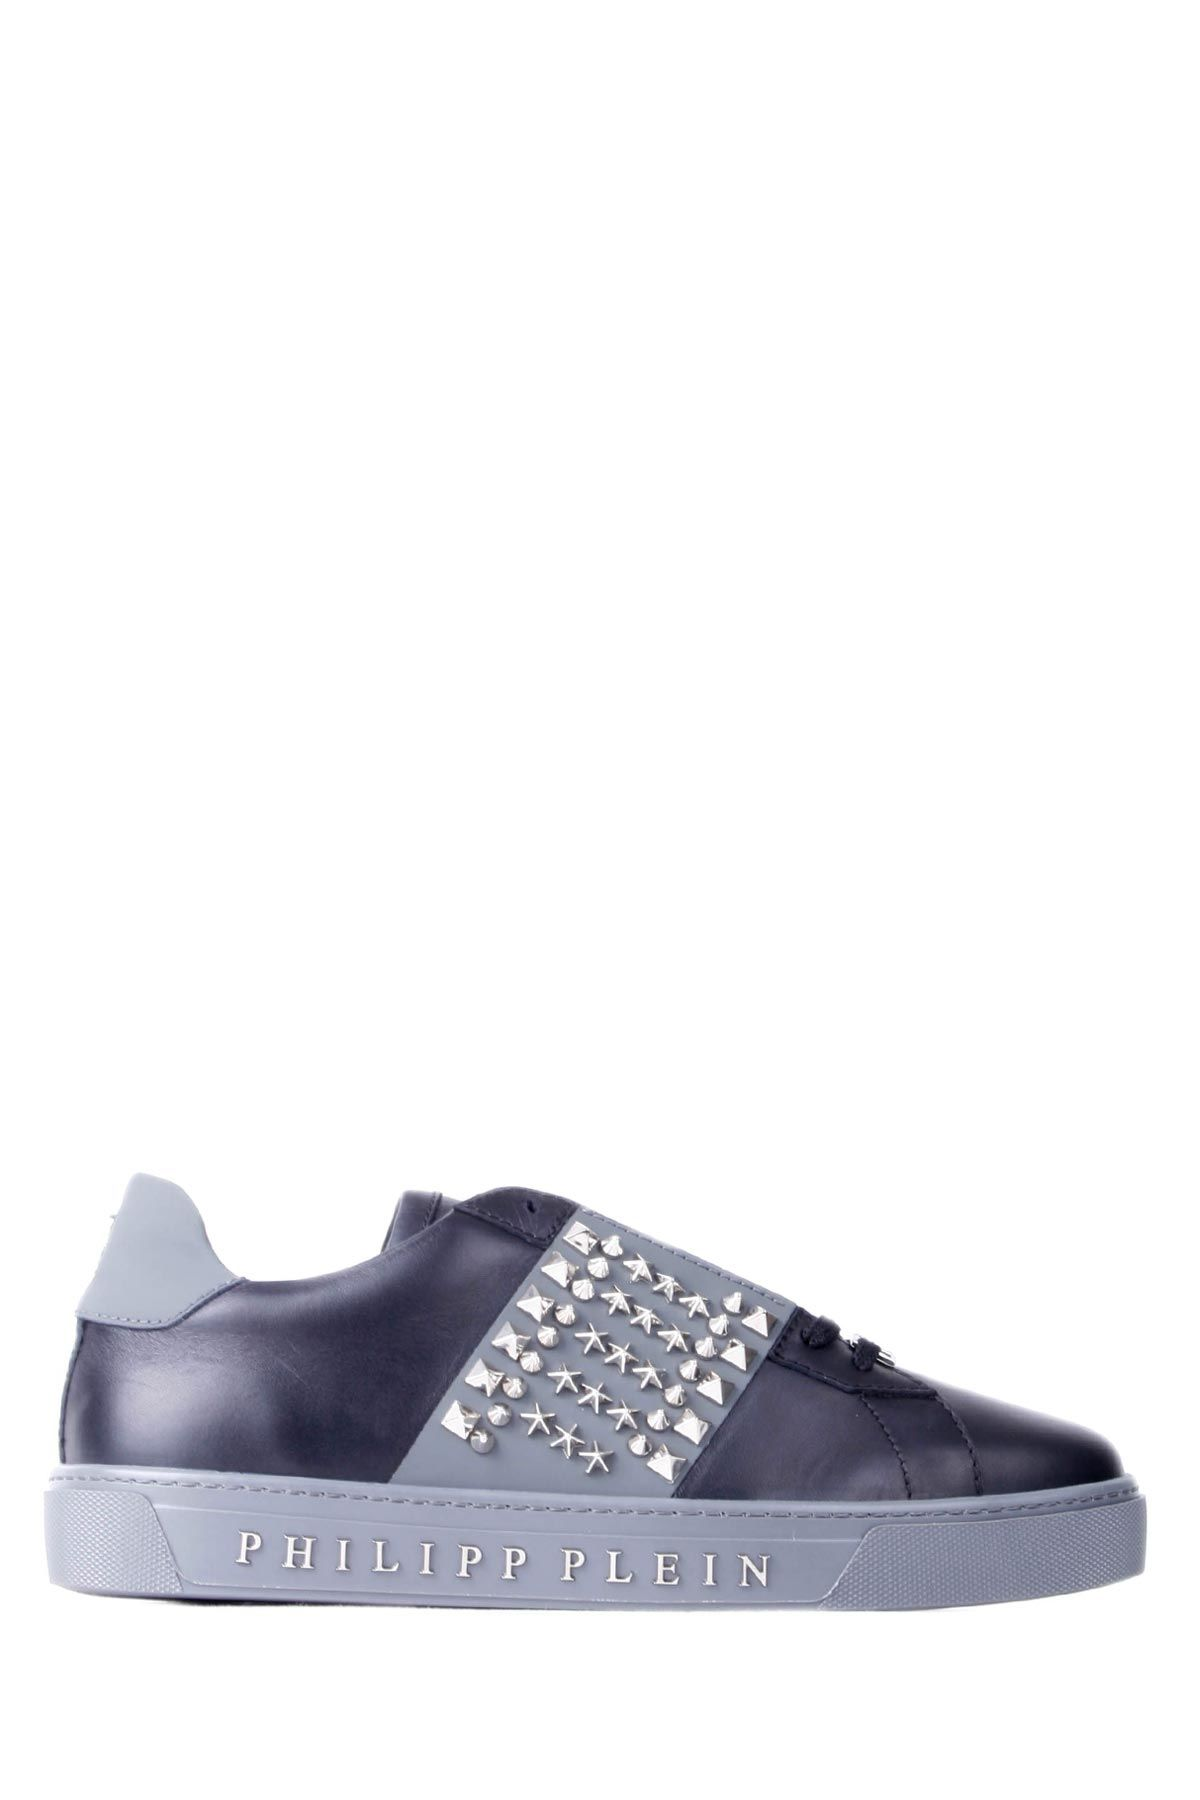 Philipp Plein Black-grey Leather Low-top Take Studded Sneakers